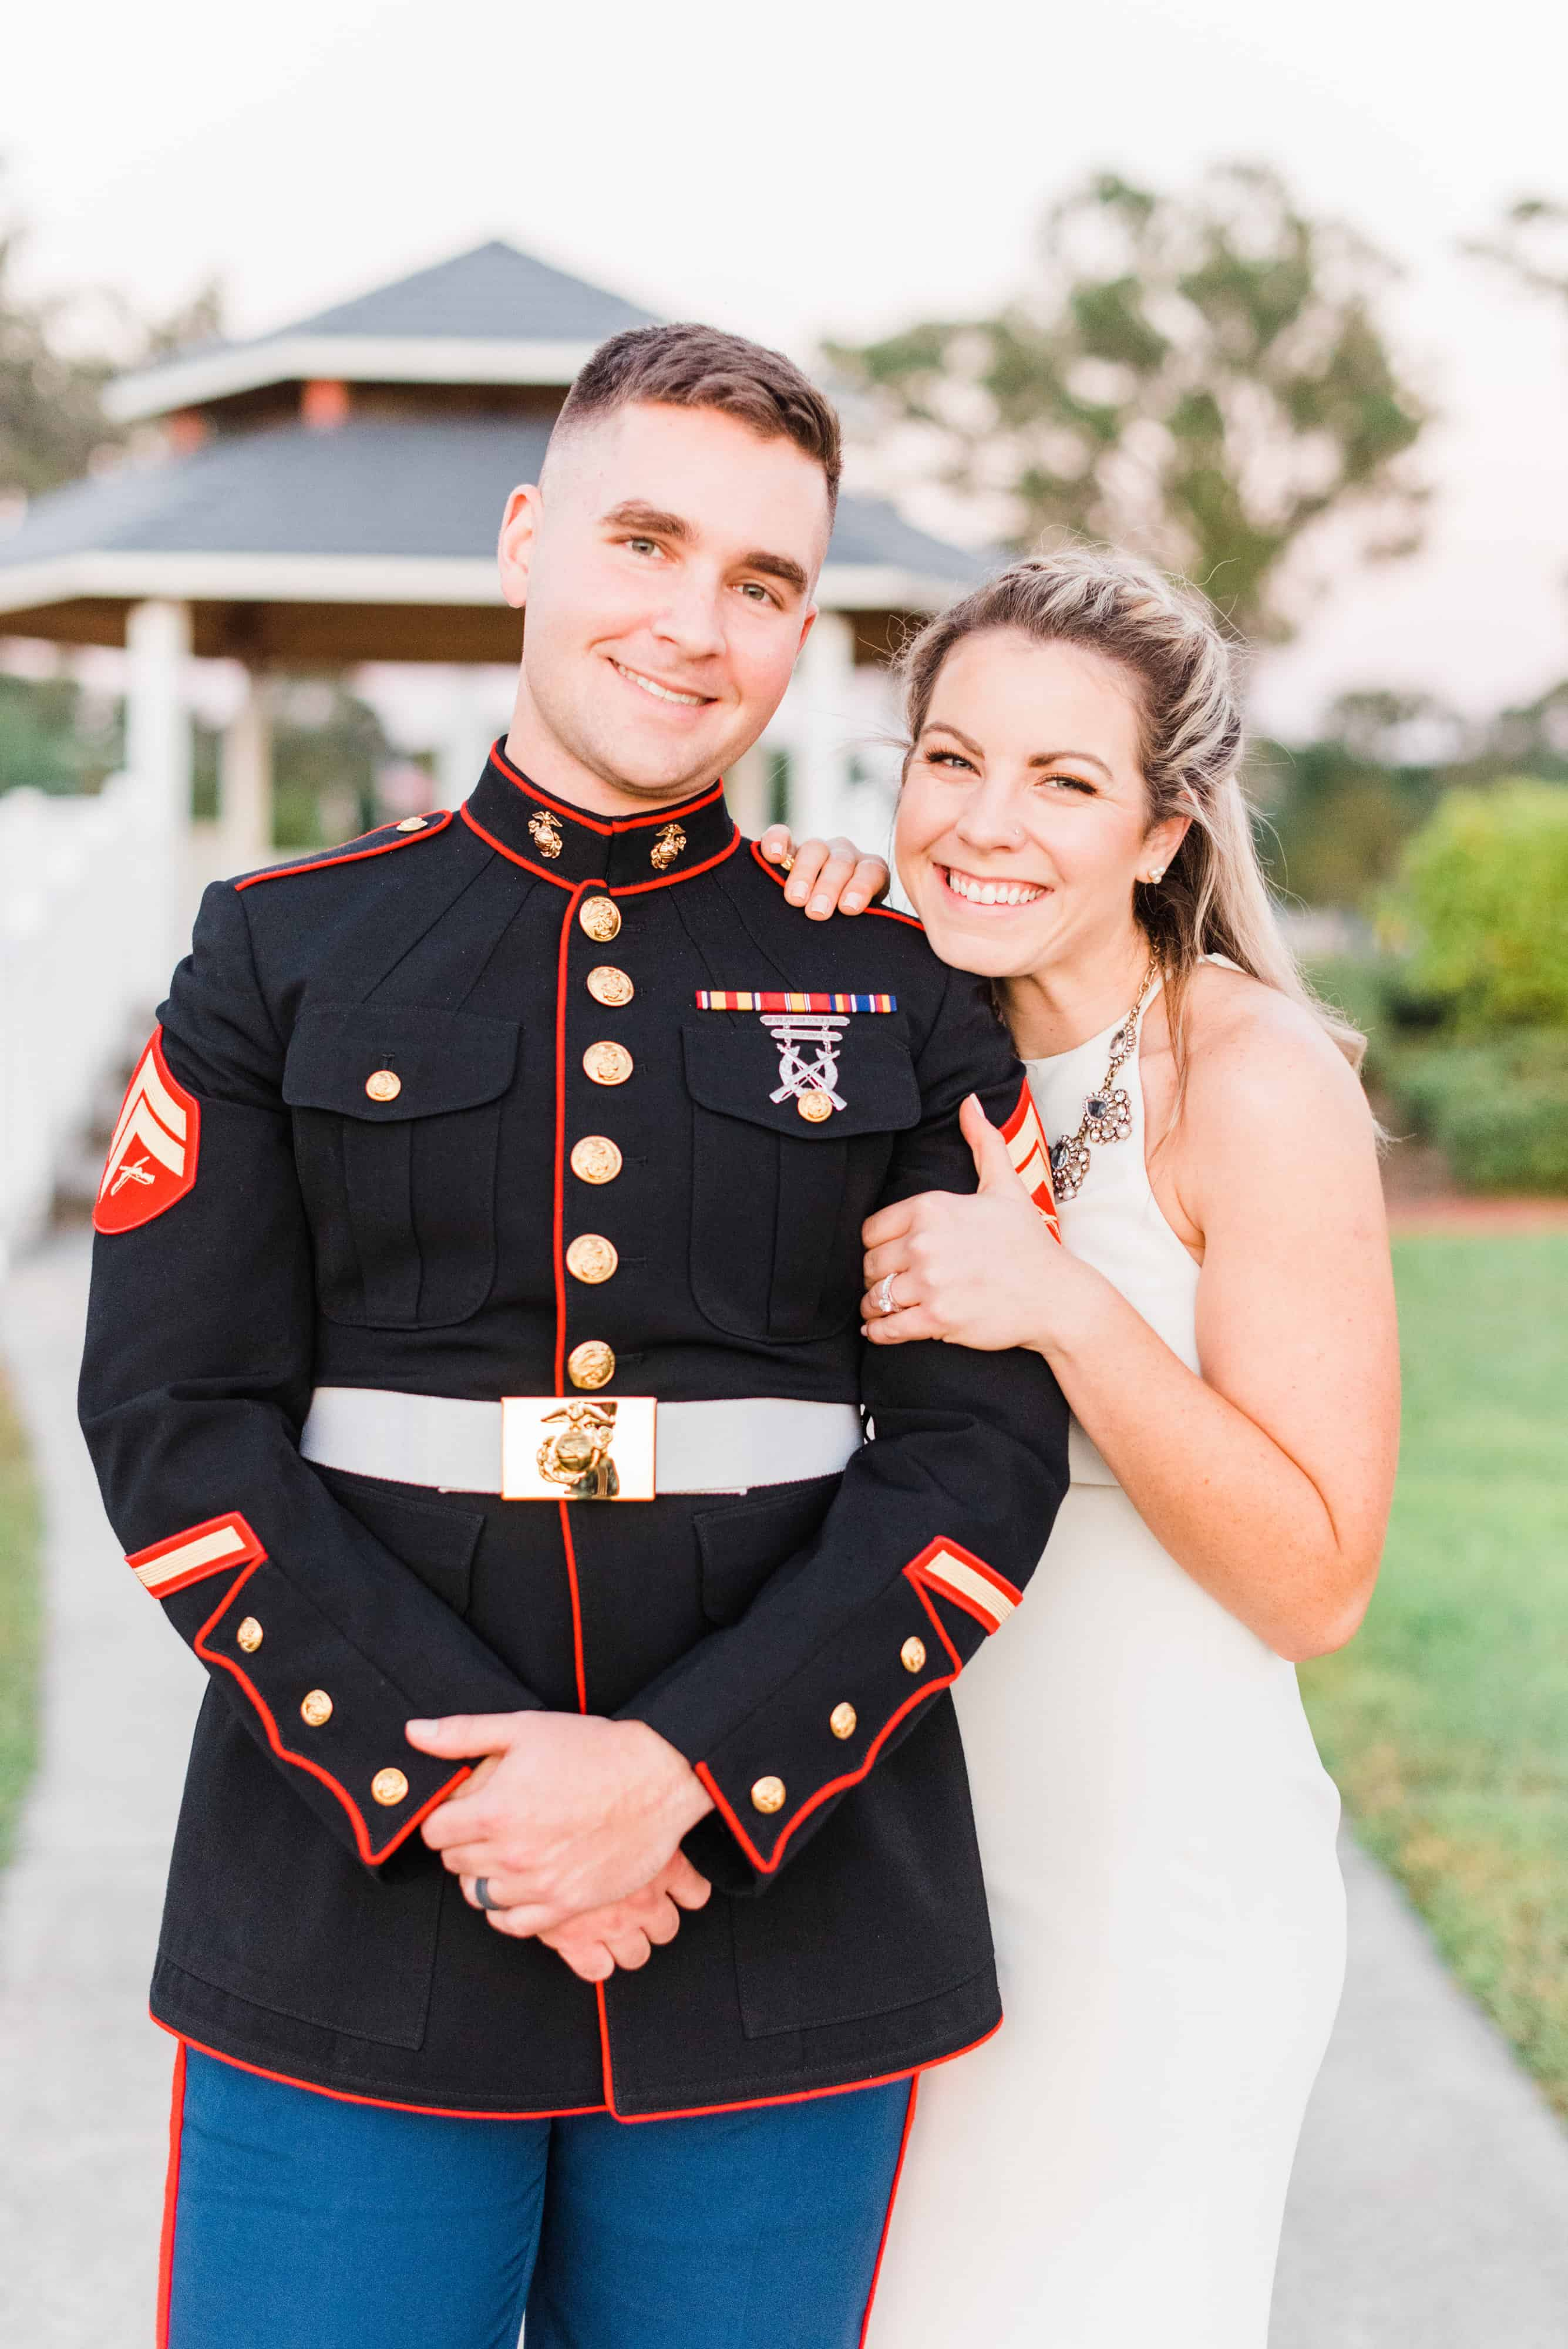 Military Weddings Reasons Why Brides Eloped Instead of Having A Traditional Wedding